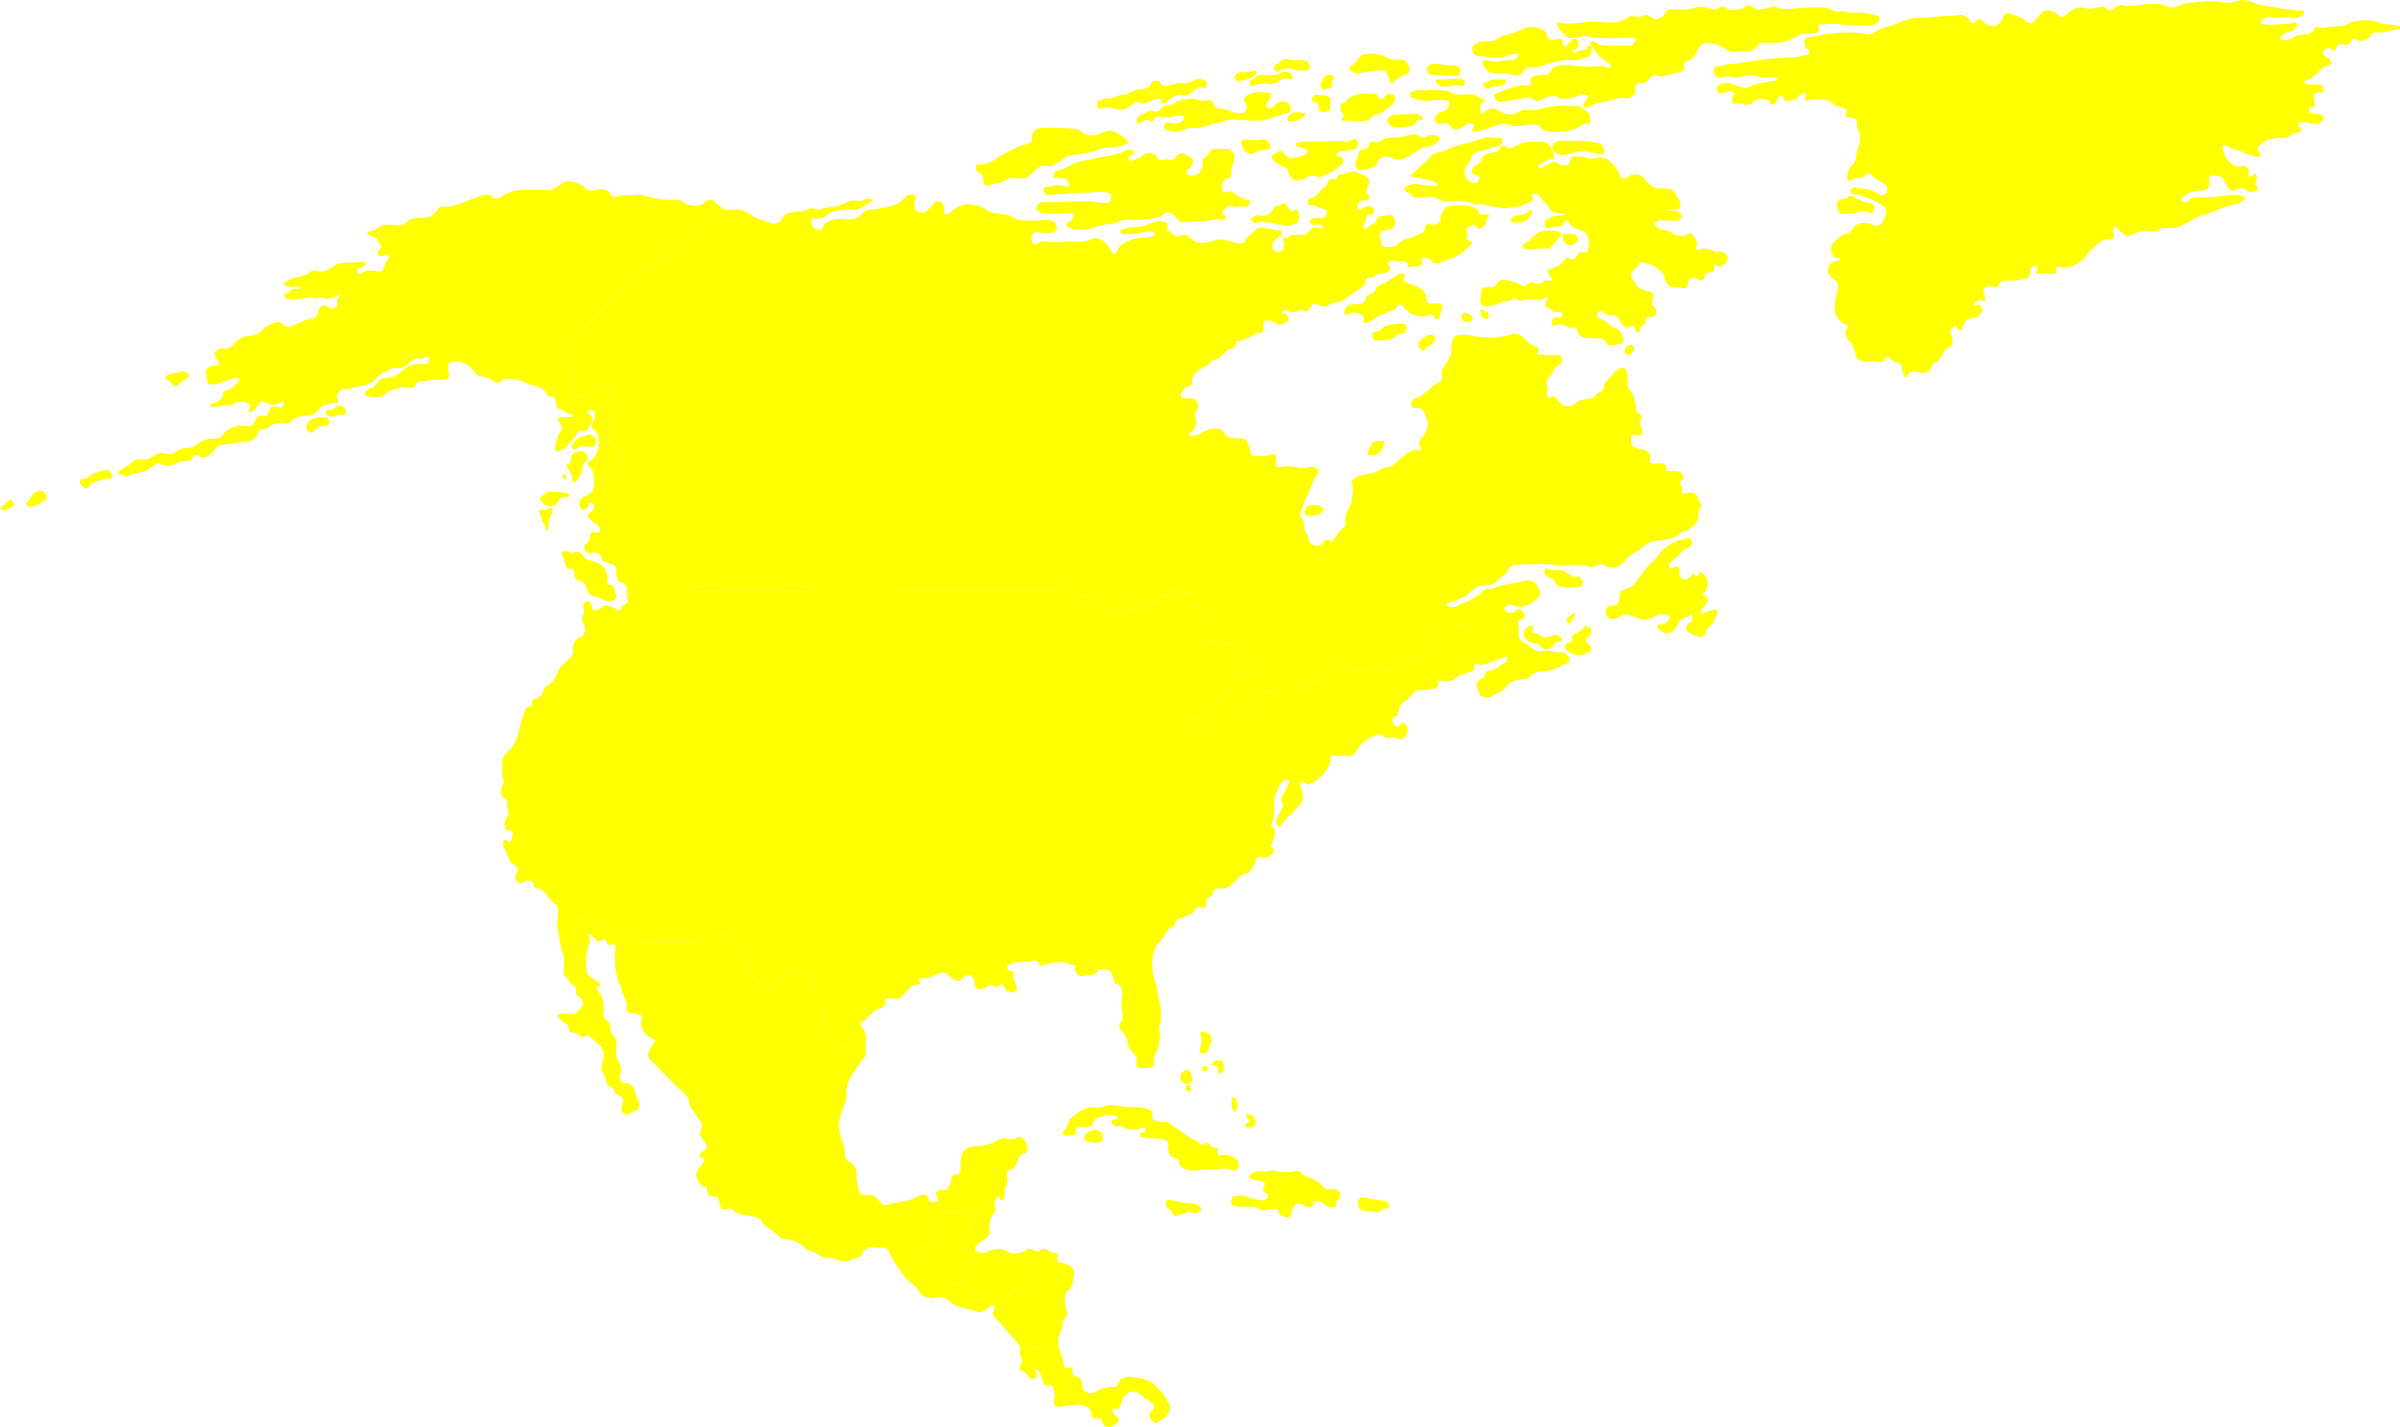 North-American continent by Iyo